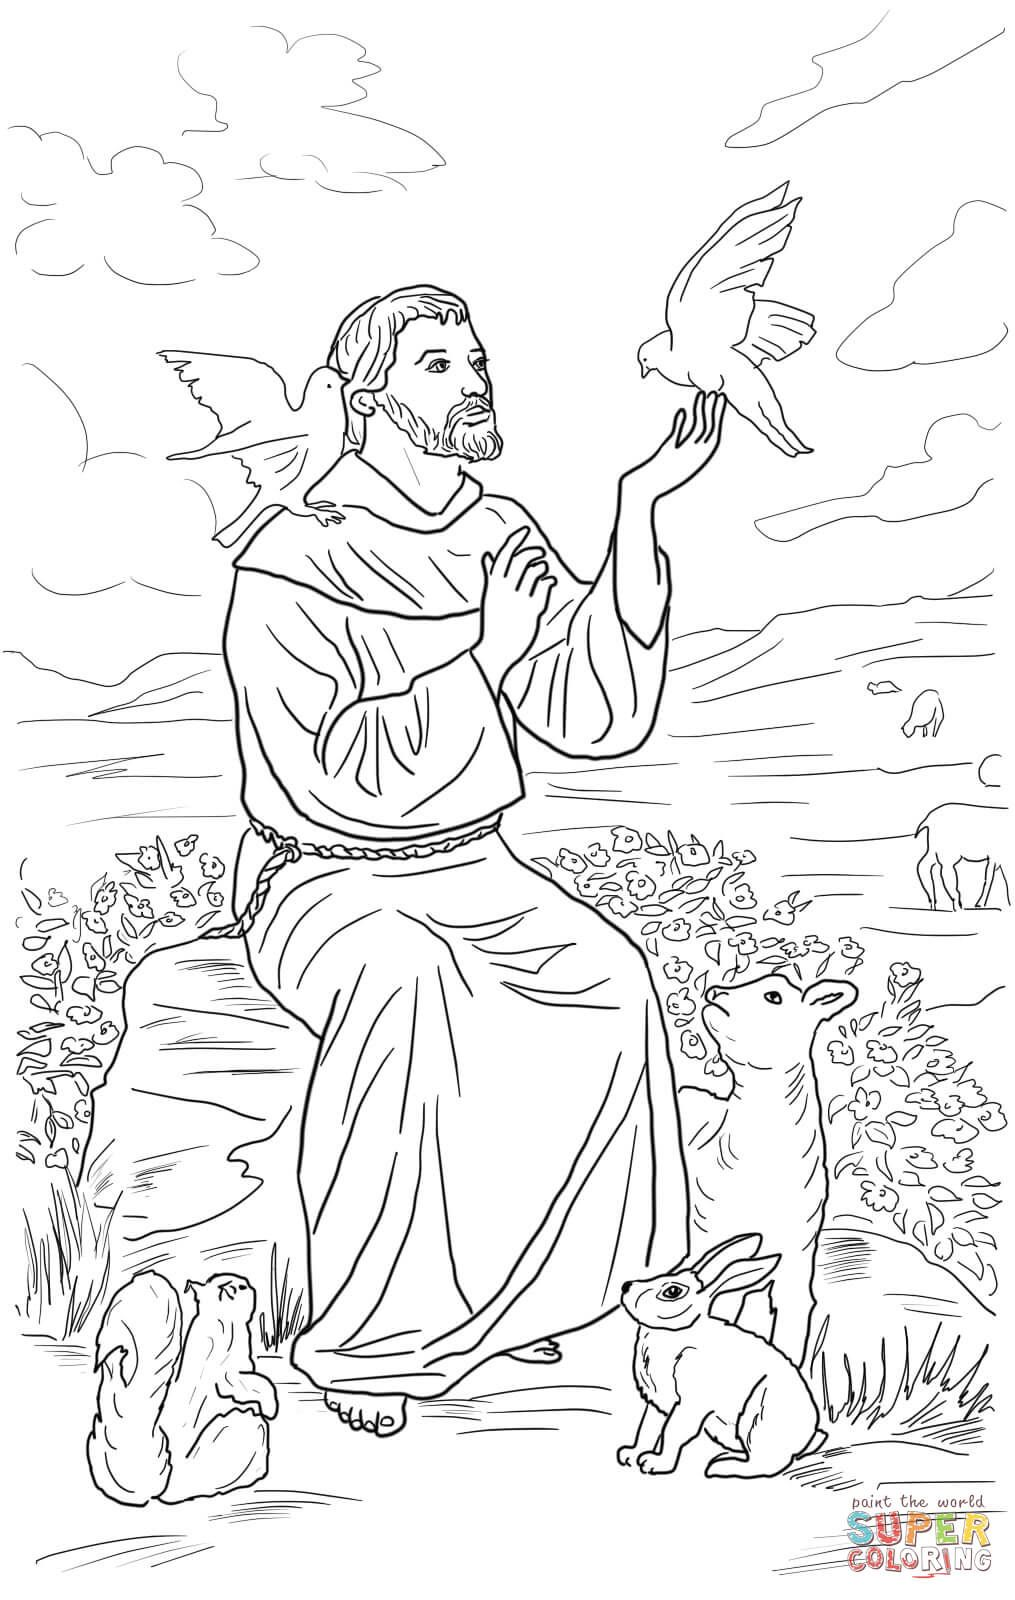 st francis of assisi coloring page st francis of assisi coloring pages for catholic kids st of francis assisi coloring page